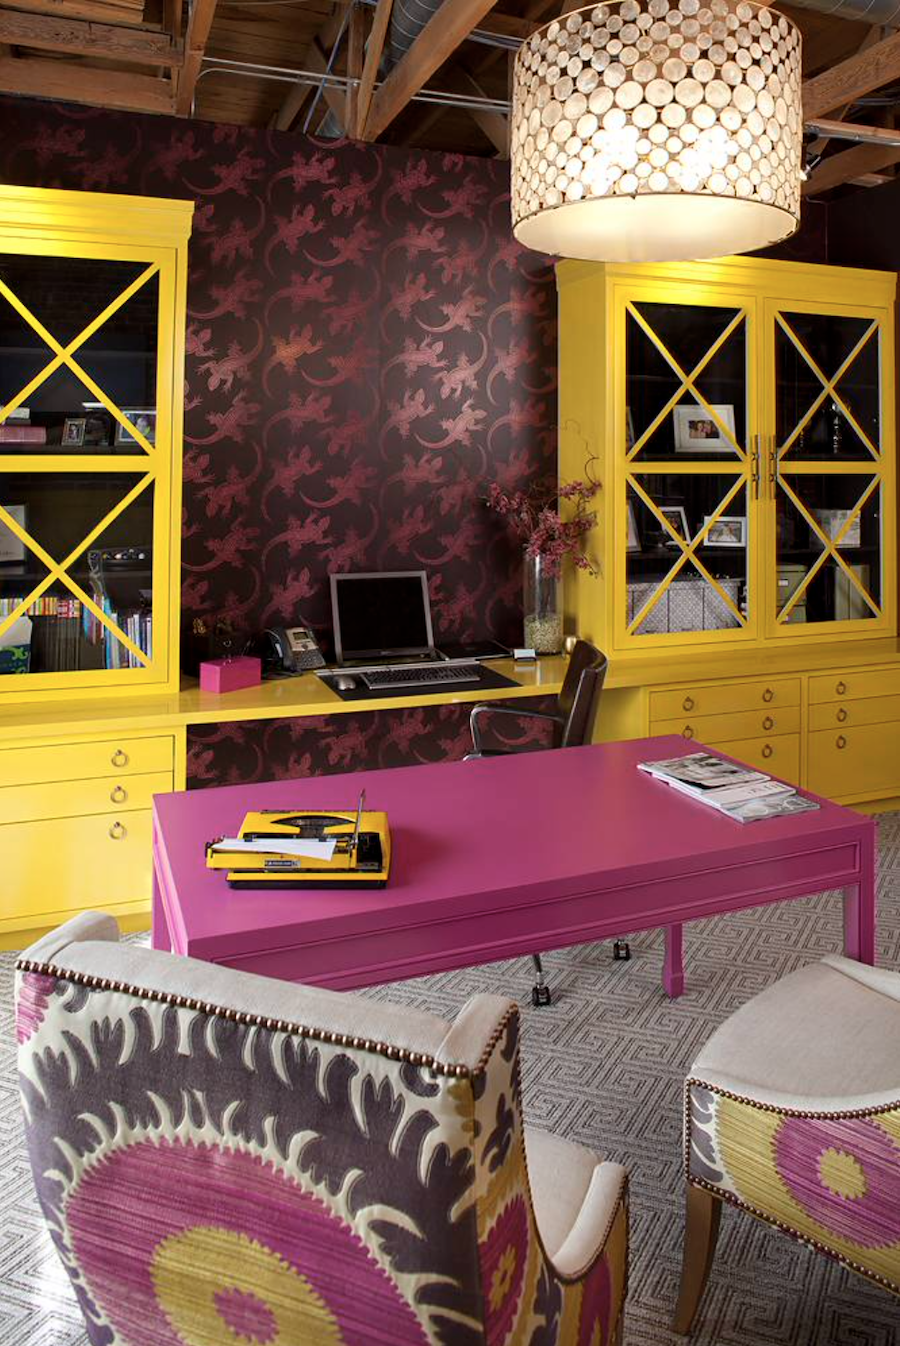 Vibrant built-ins with contrasting colors.